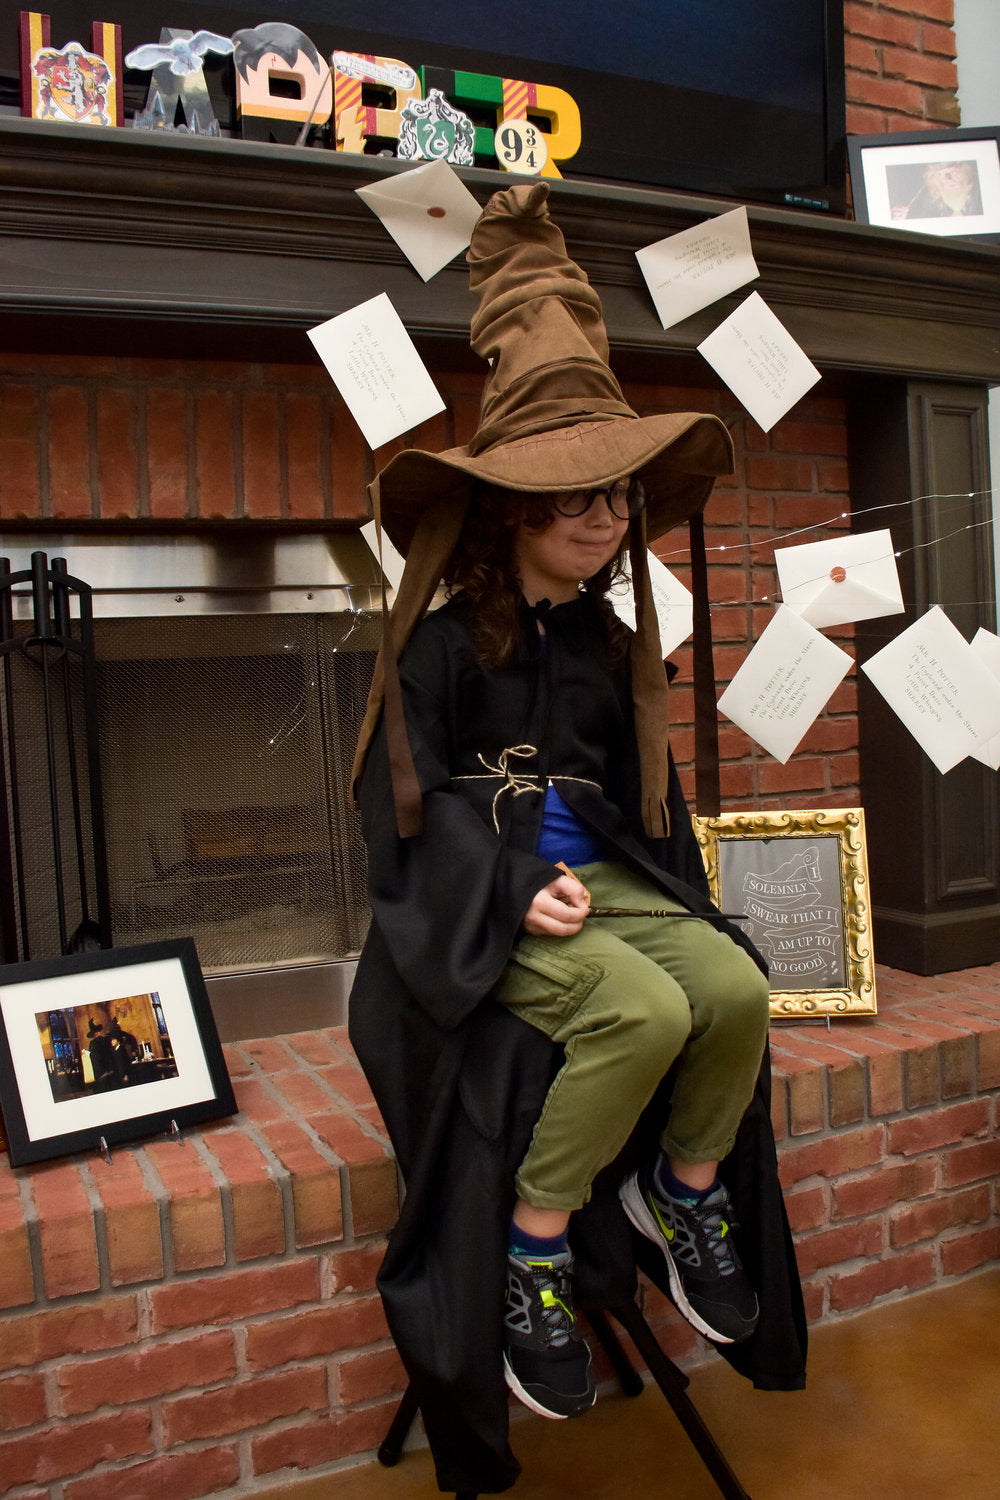 Harry Potter birthday party attendee sitting with Sorting Hat